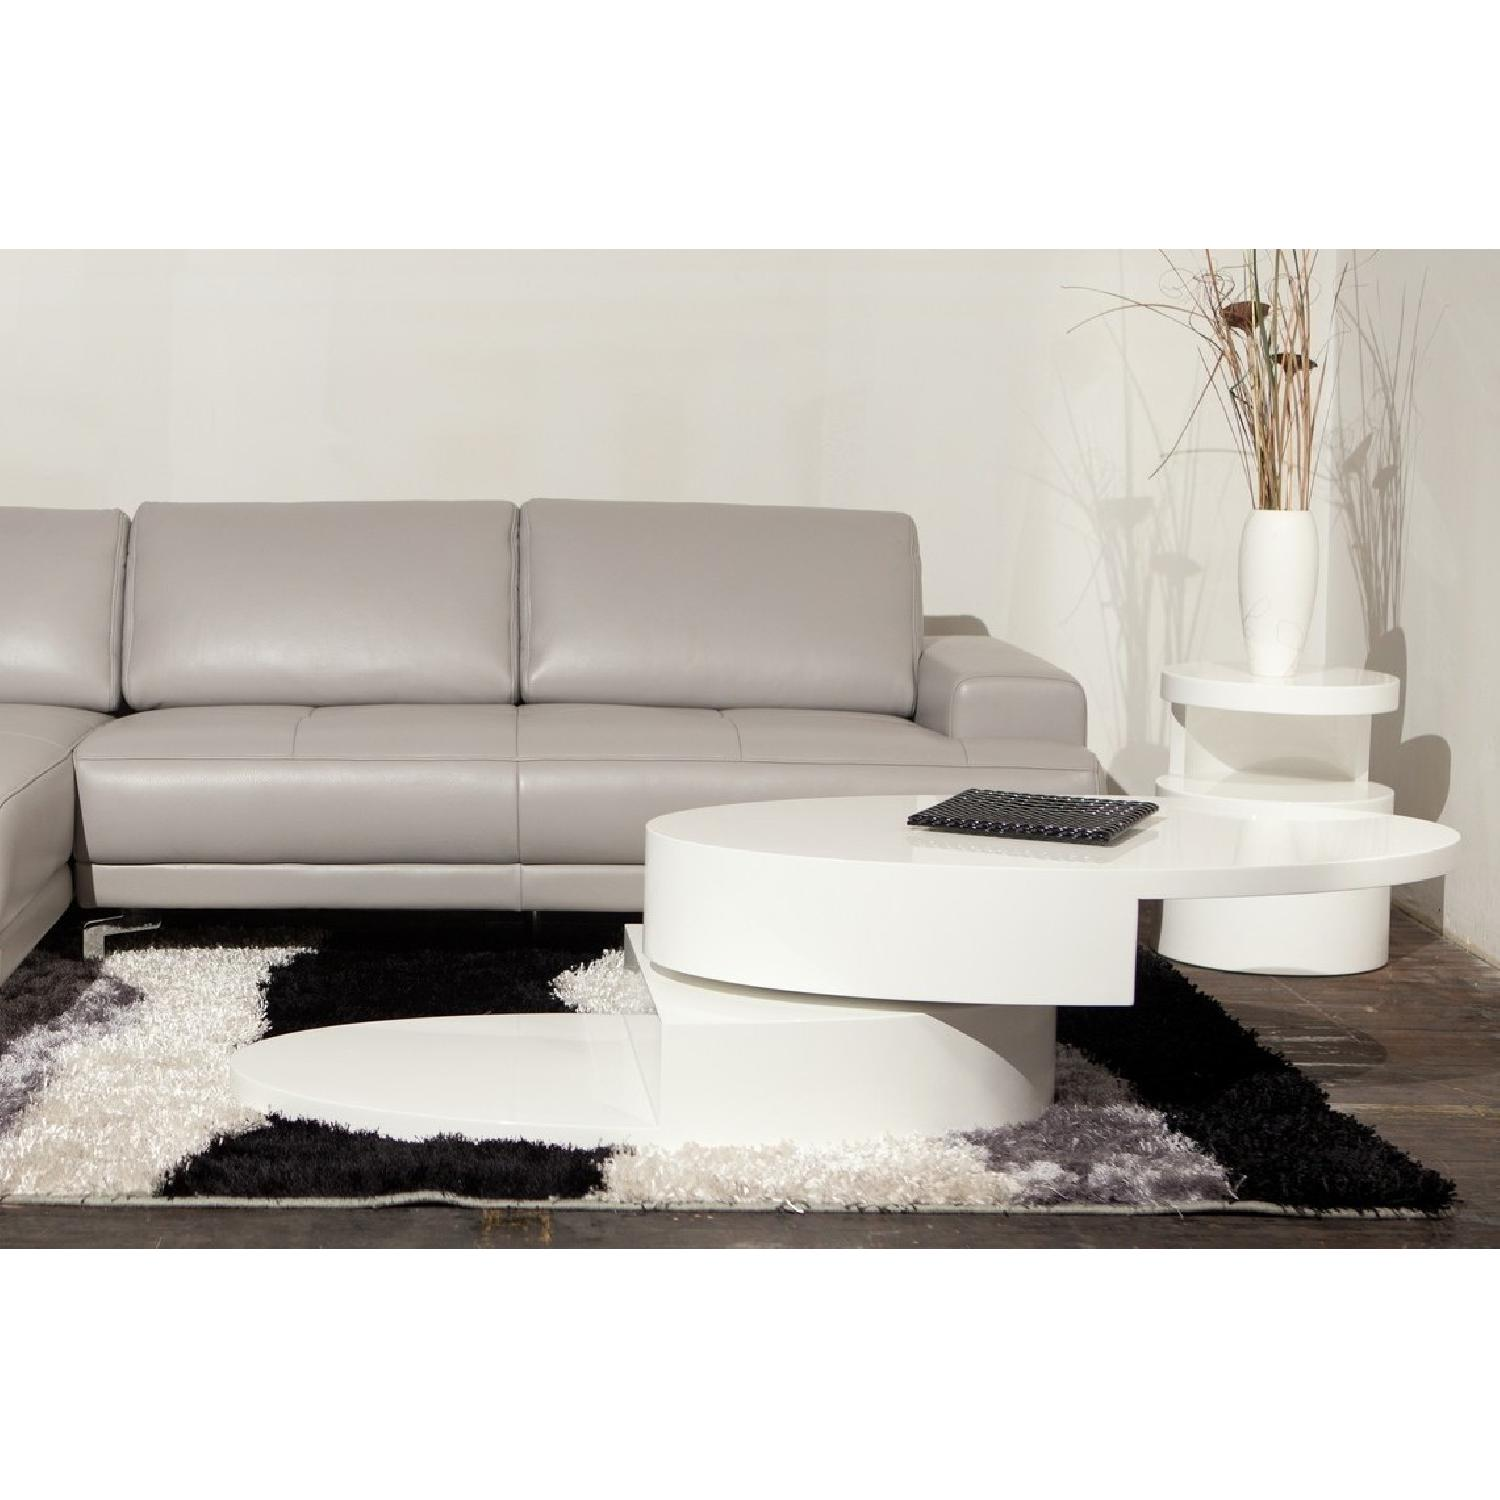 Modern High Gloss White Coffee Table w/ Swivel Oval Top & Sc-0